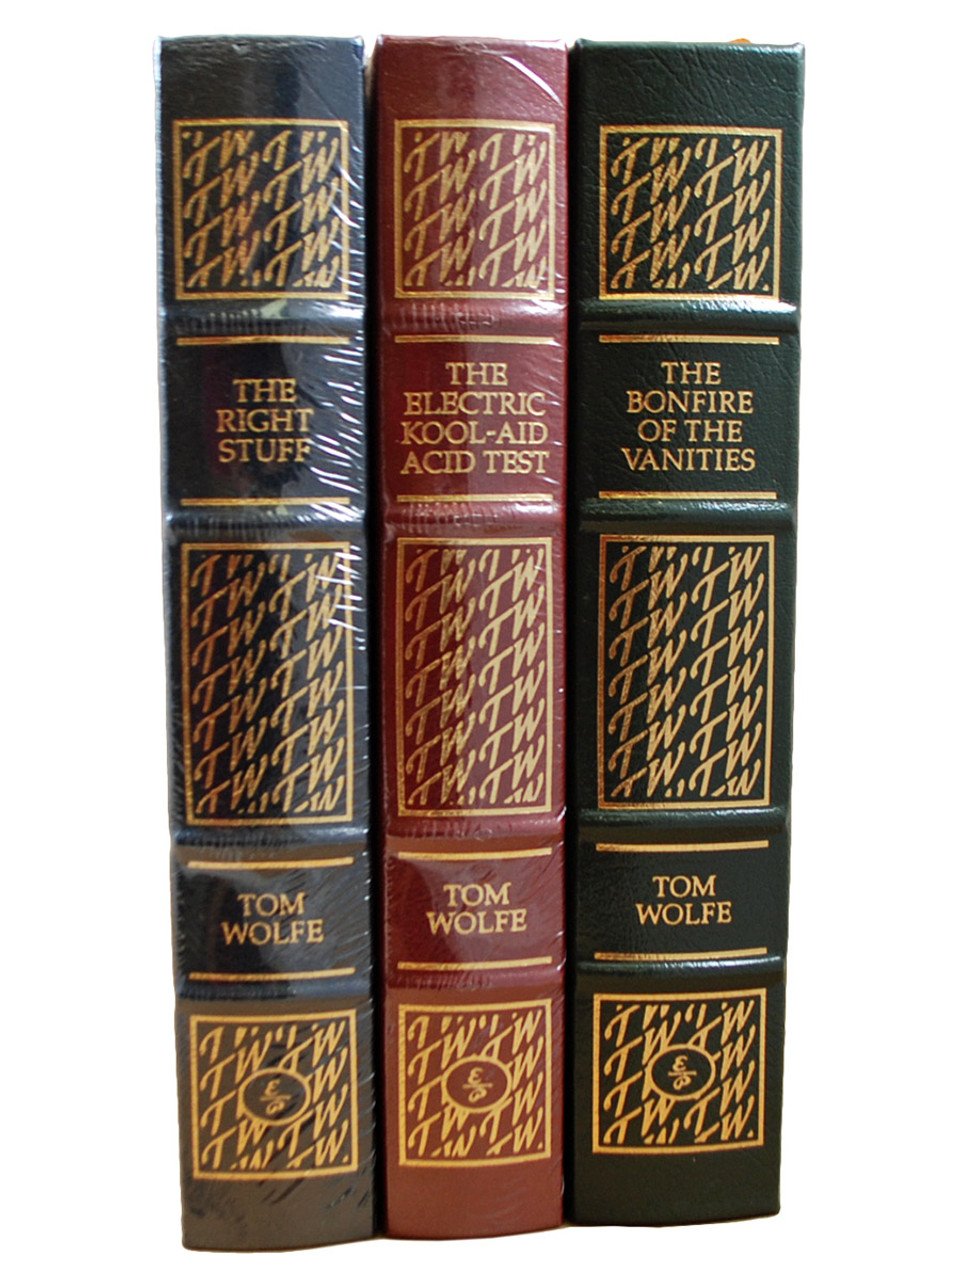 """Easton Press, Tom Wolfe """"The Electric Kool-Aid Test"""", """"The Bonfire of Vanities"""", """"The Right Stuff"""" Limited Edition, Leather Bound Collector's Edition, 3 Vol. Matched Set [Sealed]"""